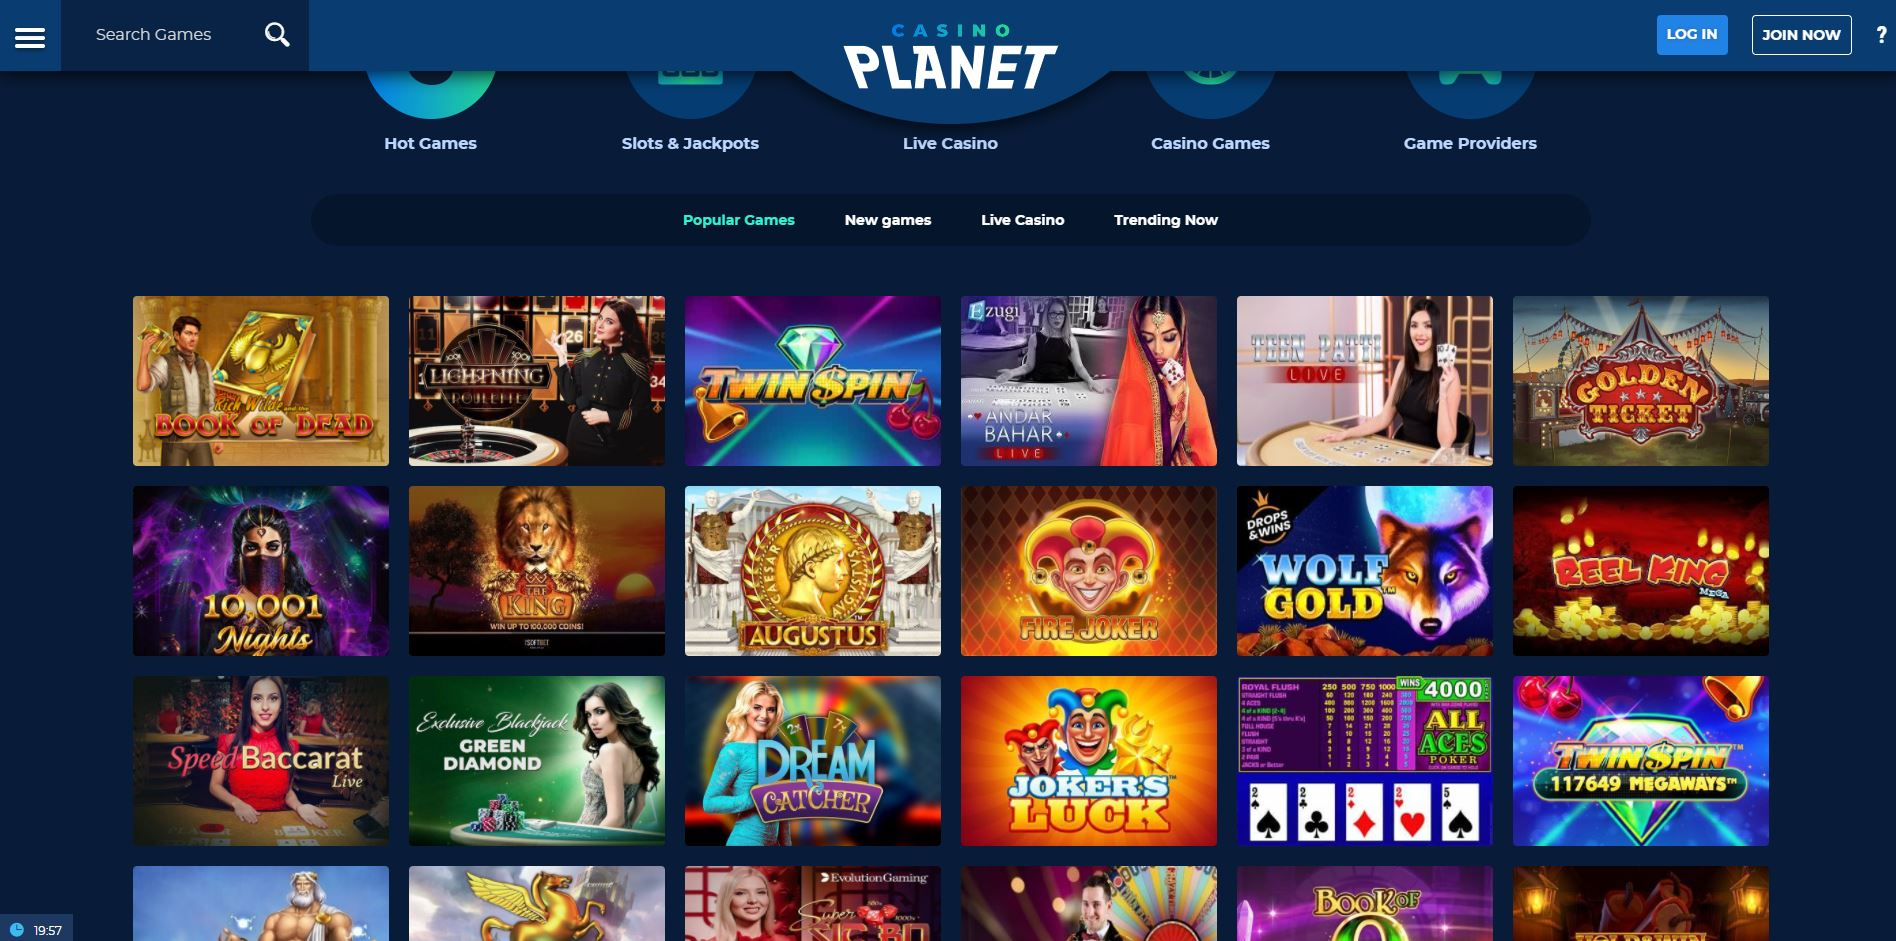 Casino Planet India Review